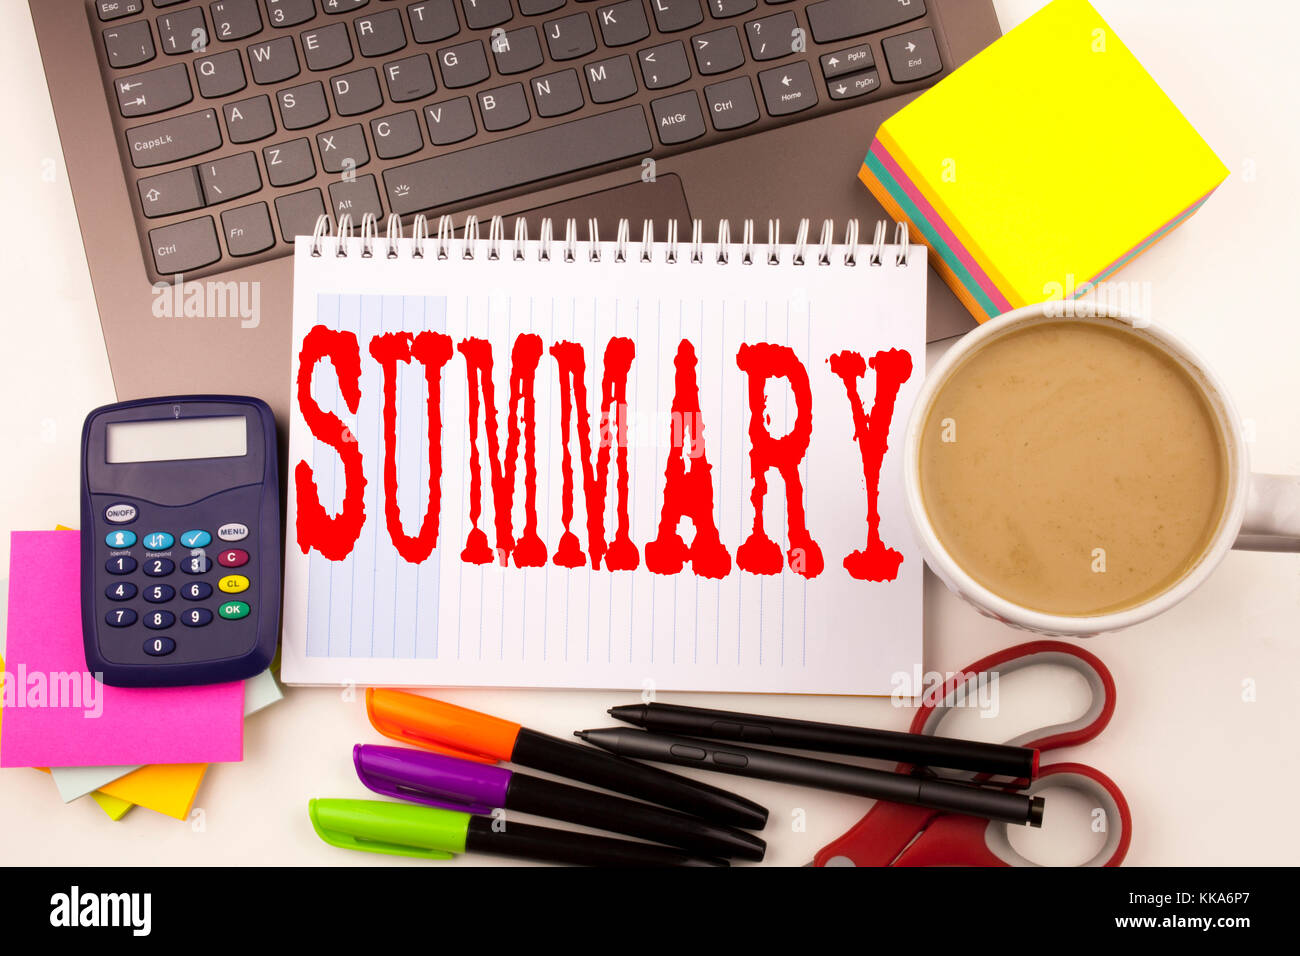 Word writing Summary in the office with laptop, marker, pen, stationery, coffee. Business concept for Brief Review - Stock Image